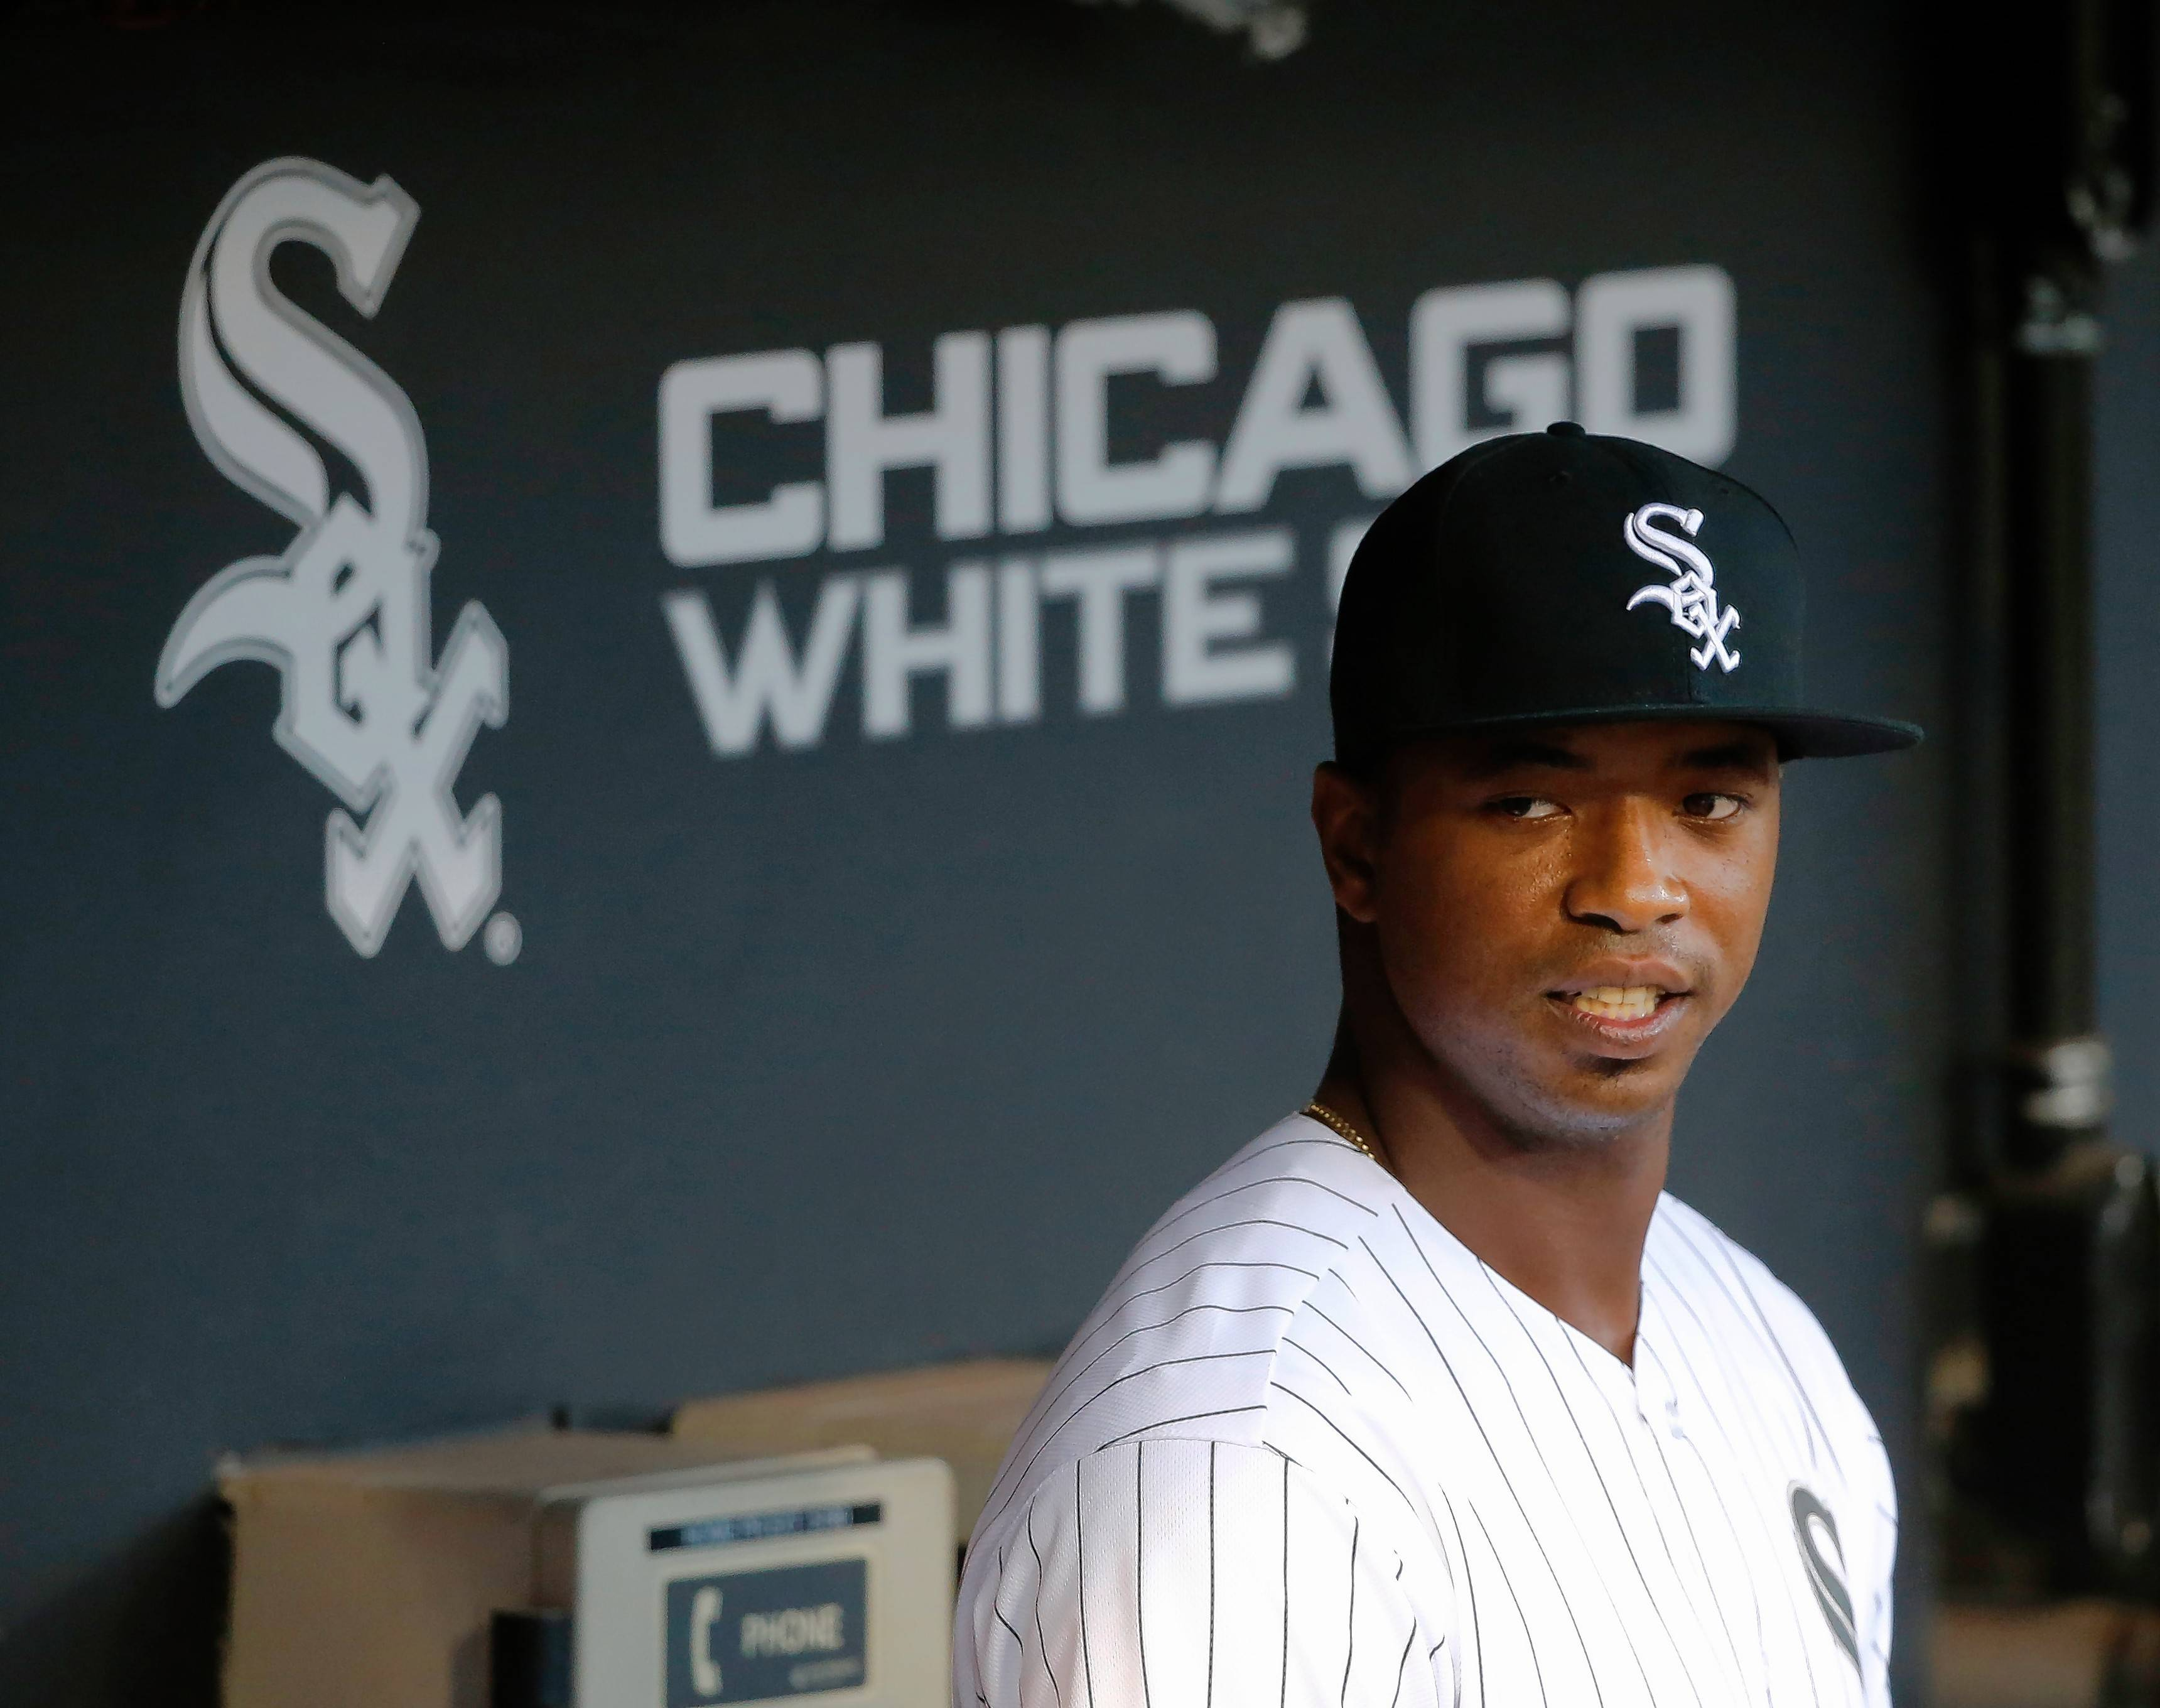 White Sox prospect Eloy Jimenez, ranked No. 4 overall by MLB.com, has played well in the Dominican Republic Winter League, He hit .312 in the minors last season.